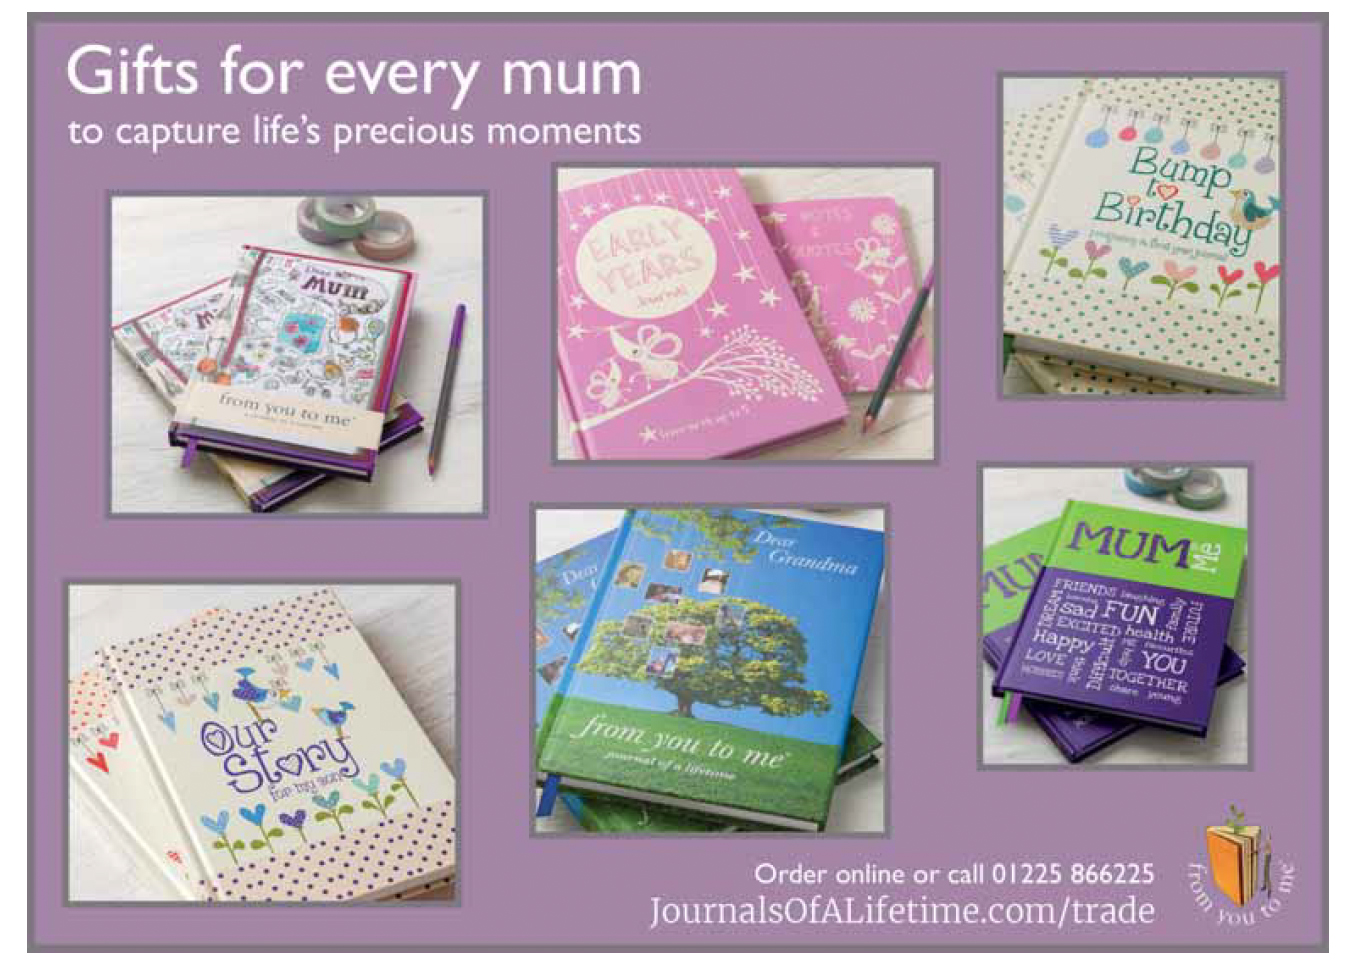 Mother's Day range ad in Gift Focus